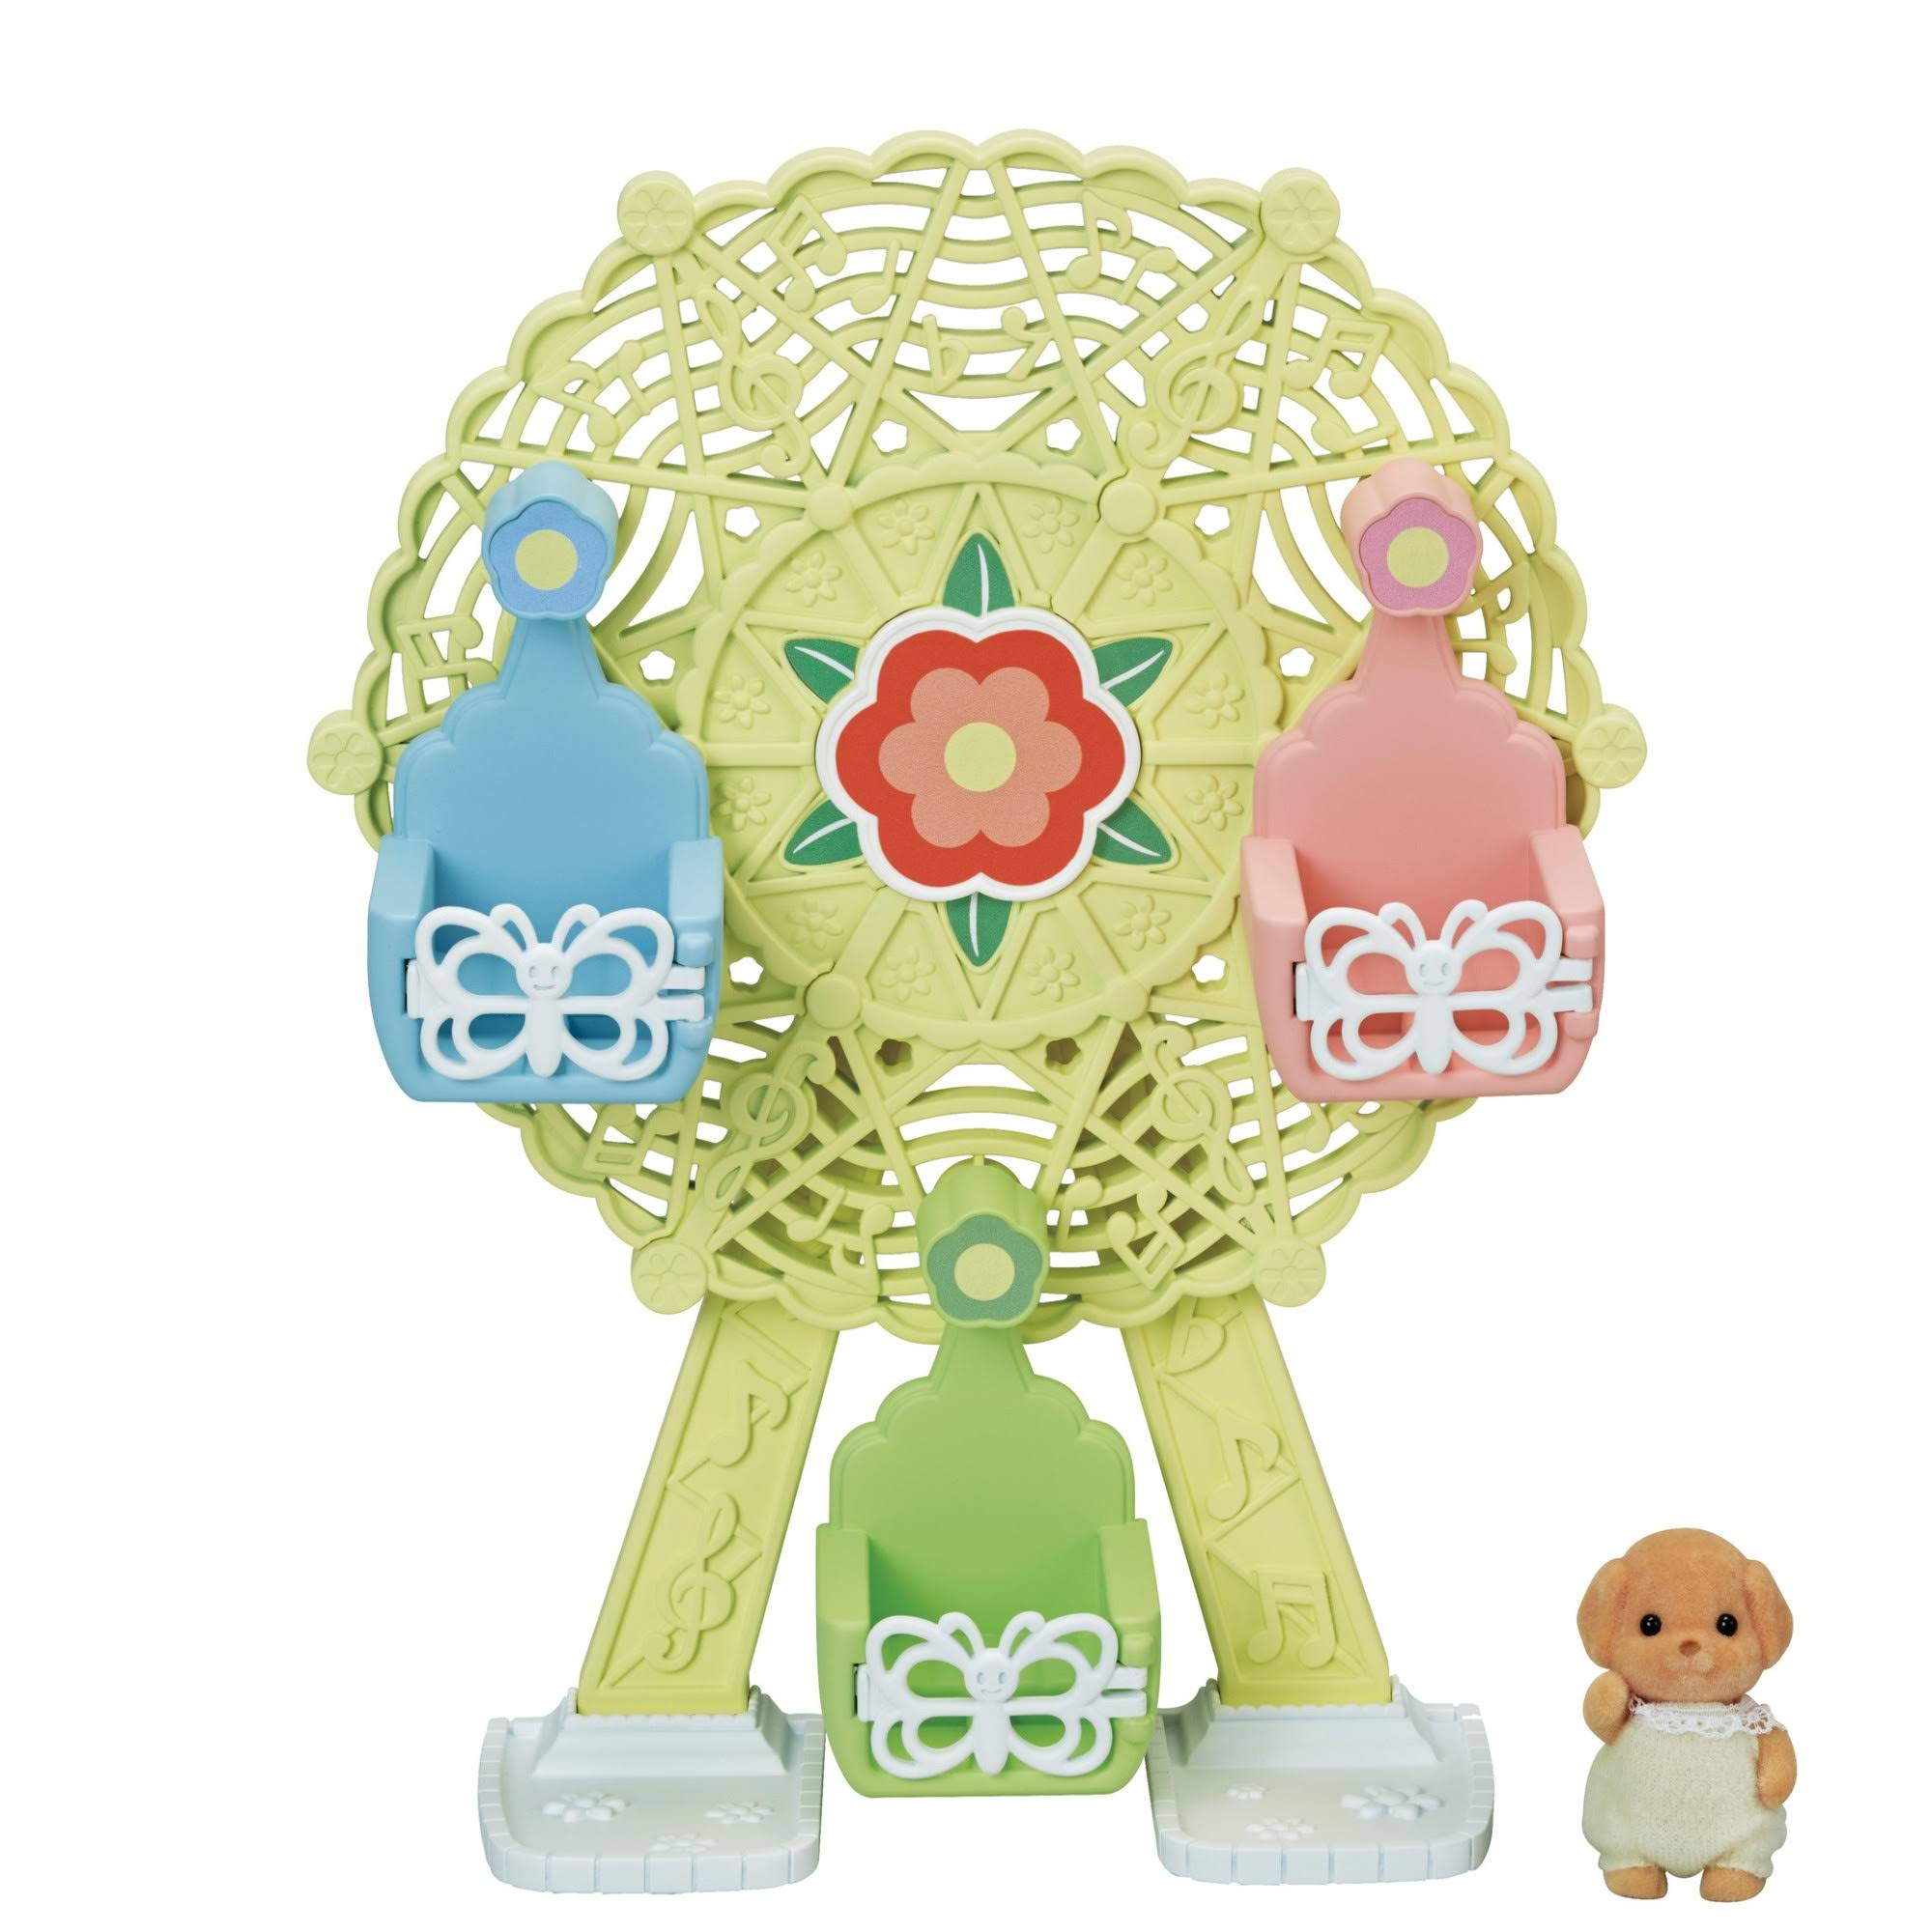 Calico Critters - Baby Ferris Wheel